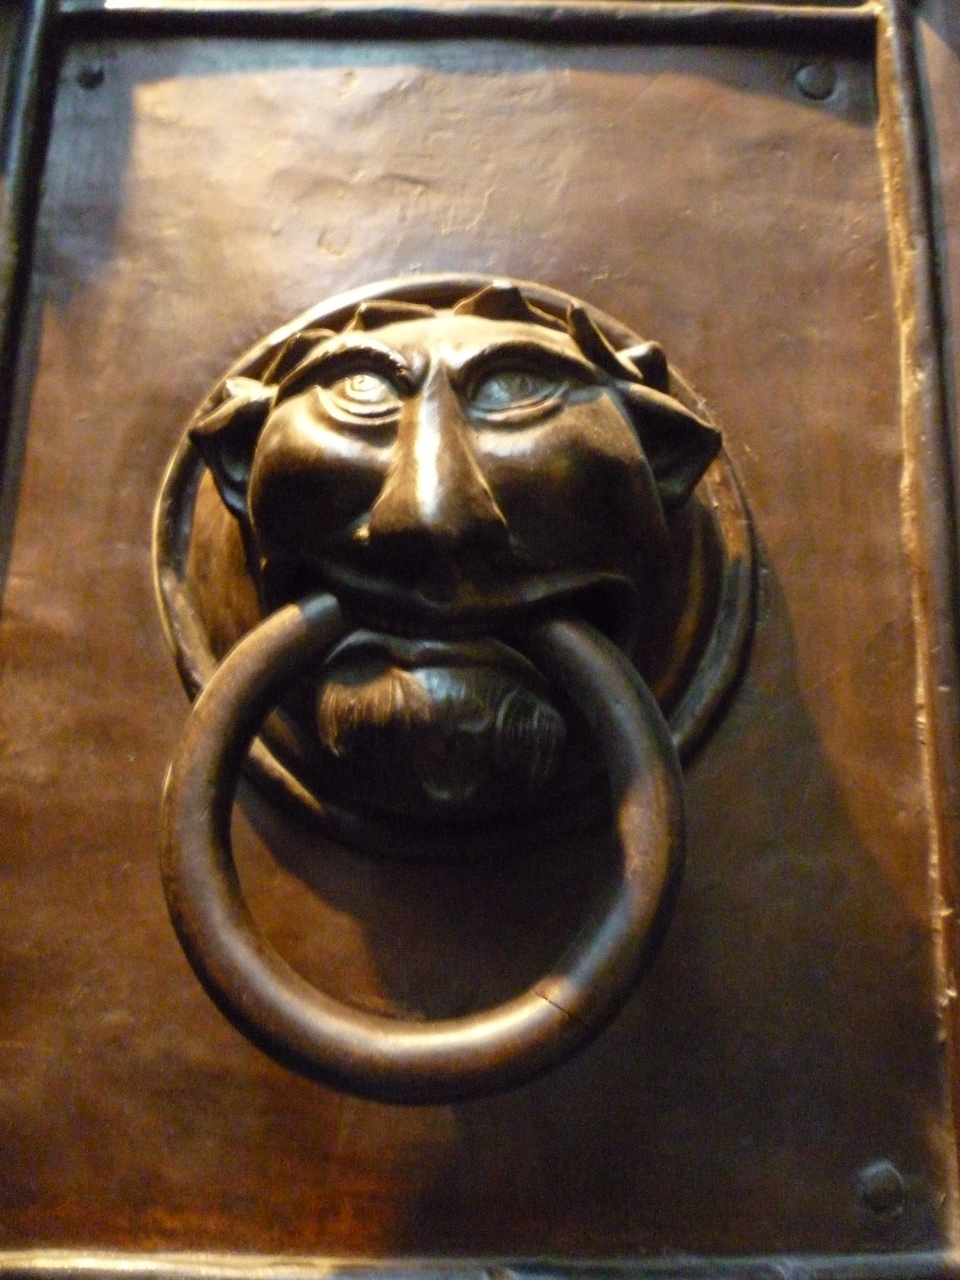 labyrinth doorknocker